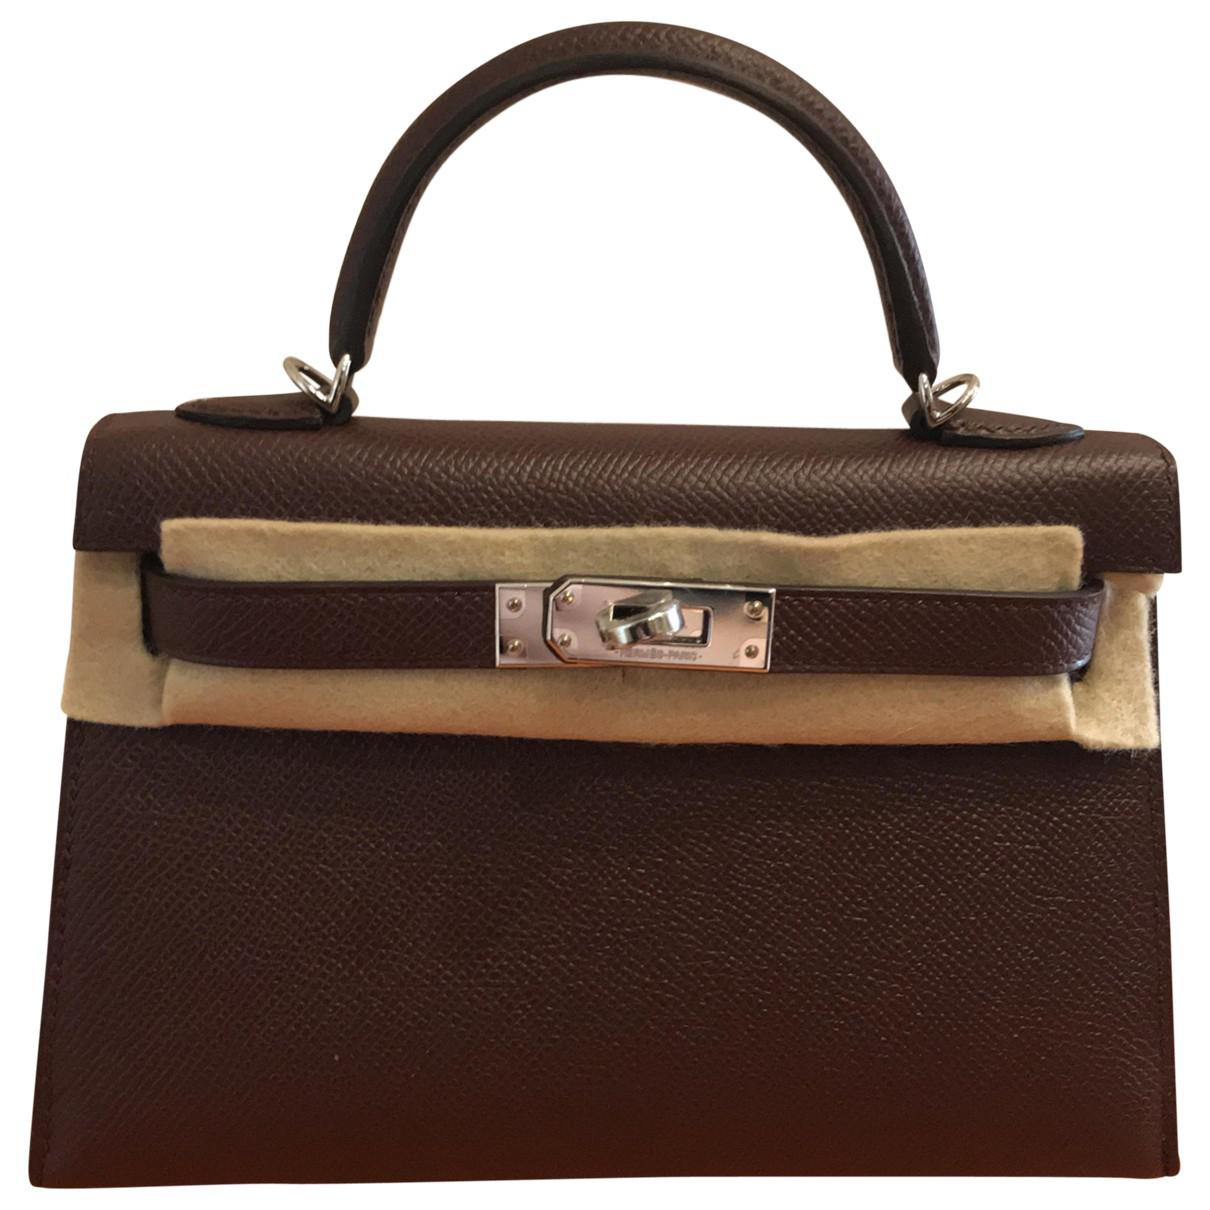 e76ccc5c1efb Lyst - Hermès Pre-owned Kelly Mini Leather Crossbody Bag in Brown